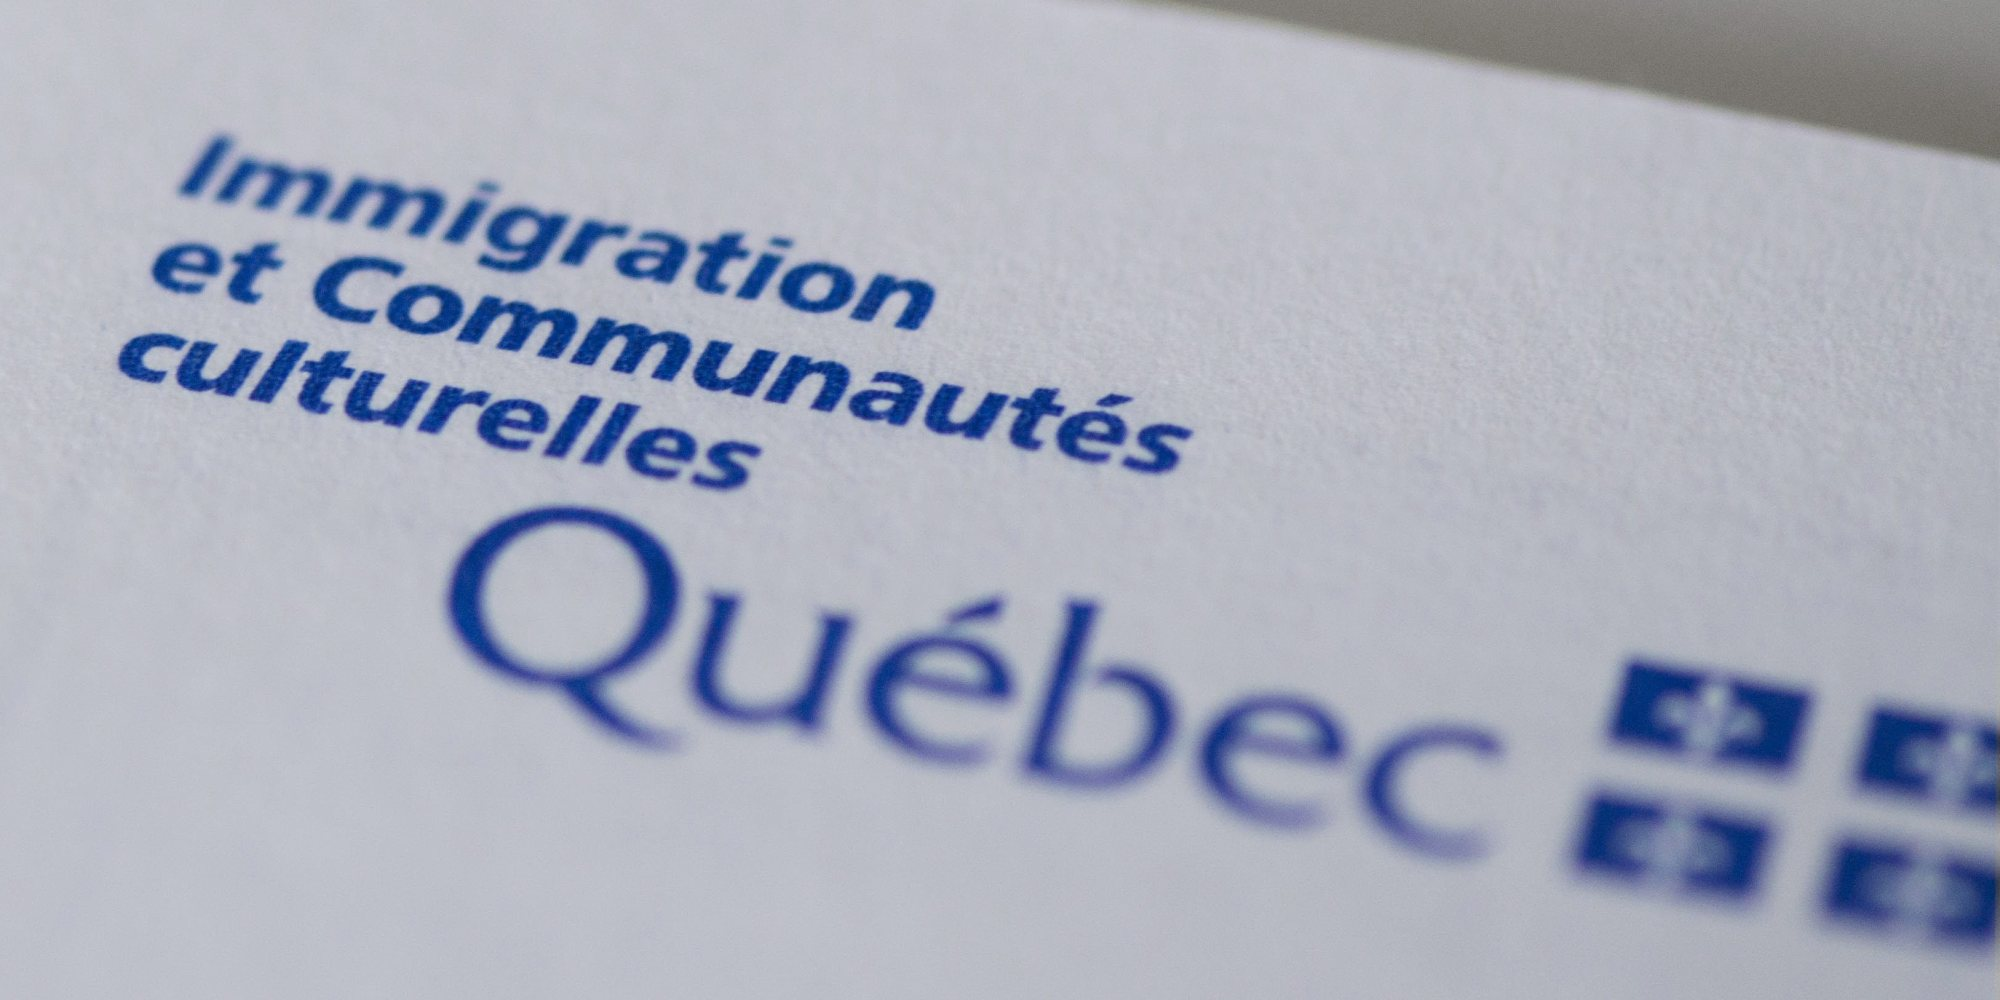 o-IMMIGRATION-ET-COMMUNAUTES-CULTURELELS-QUEBEC-facebook.jpg